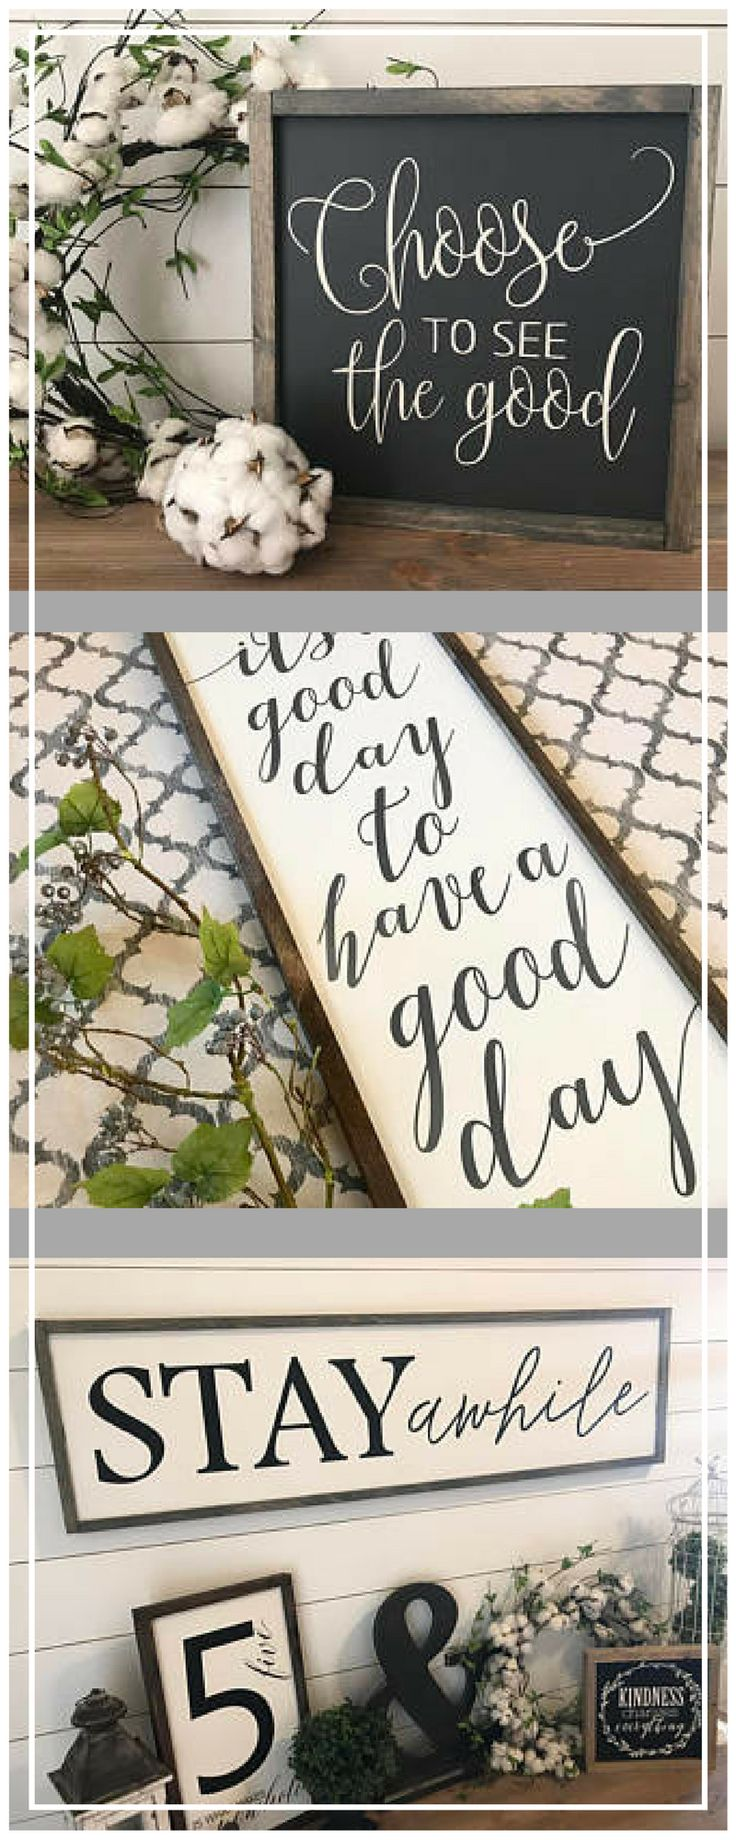 I love the positive messages of these farmhouse signs - great decor! Its a good day to have a good day 14x36 MORE COLORS / hand painted / wood sign / farmhouse style / rustic ad #afflink #farmhouse #decor #signs #decorating